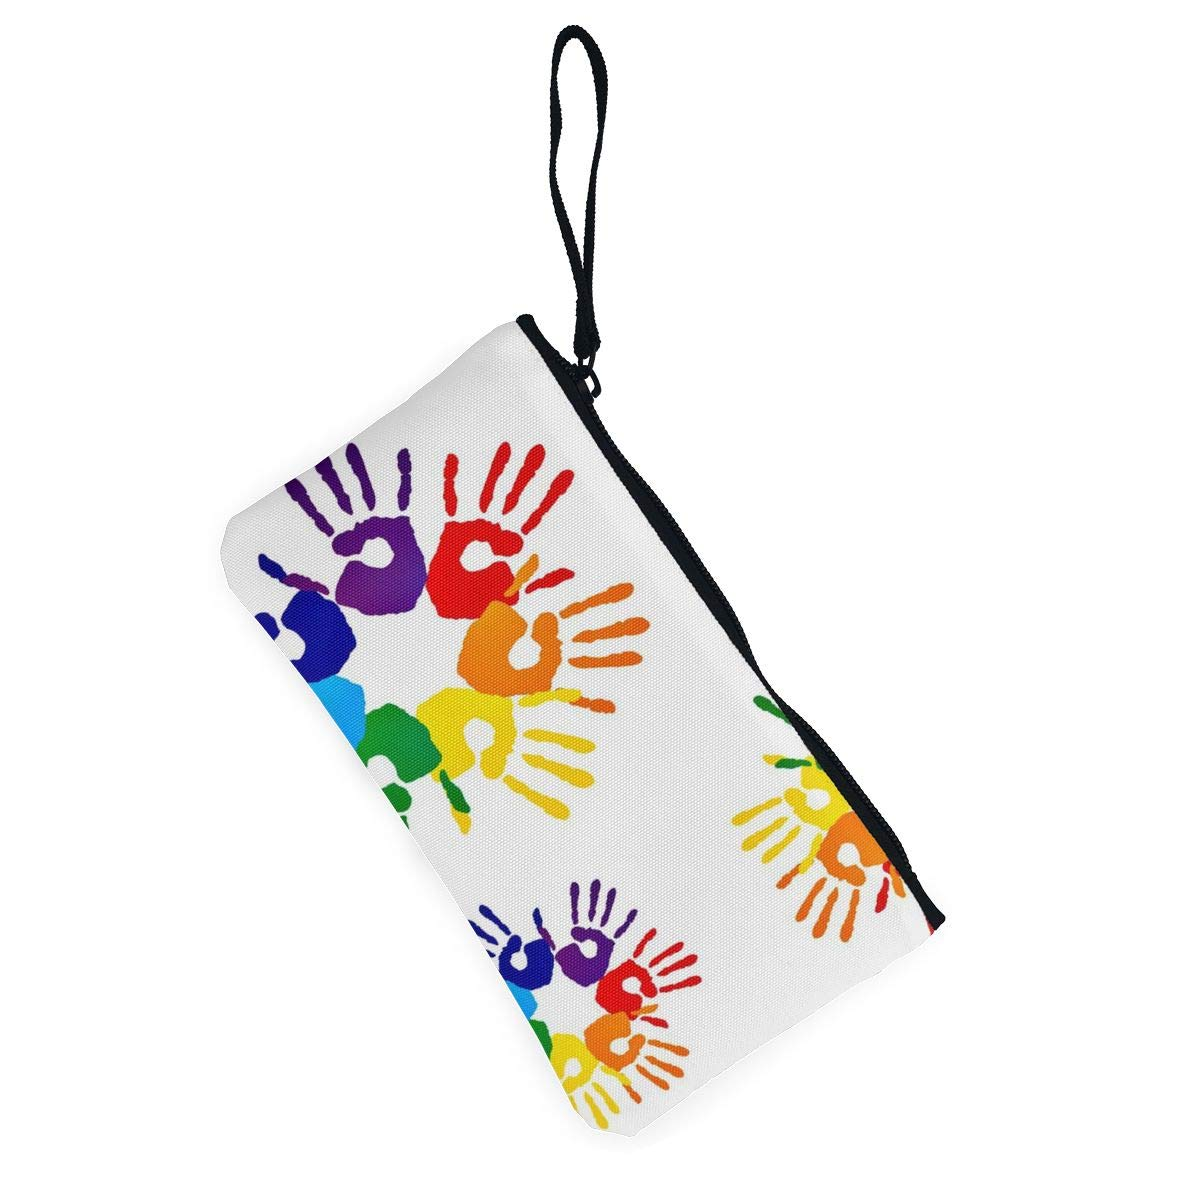 Maple Memories Gay Pride LGBT Rainbow Flag Portable Canvas Coin Purse Change Purse Pouch Mini Wallet Gifts For Women Girls